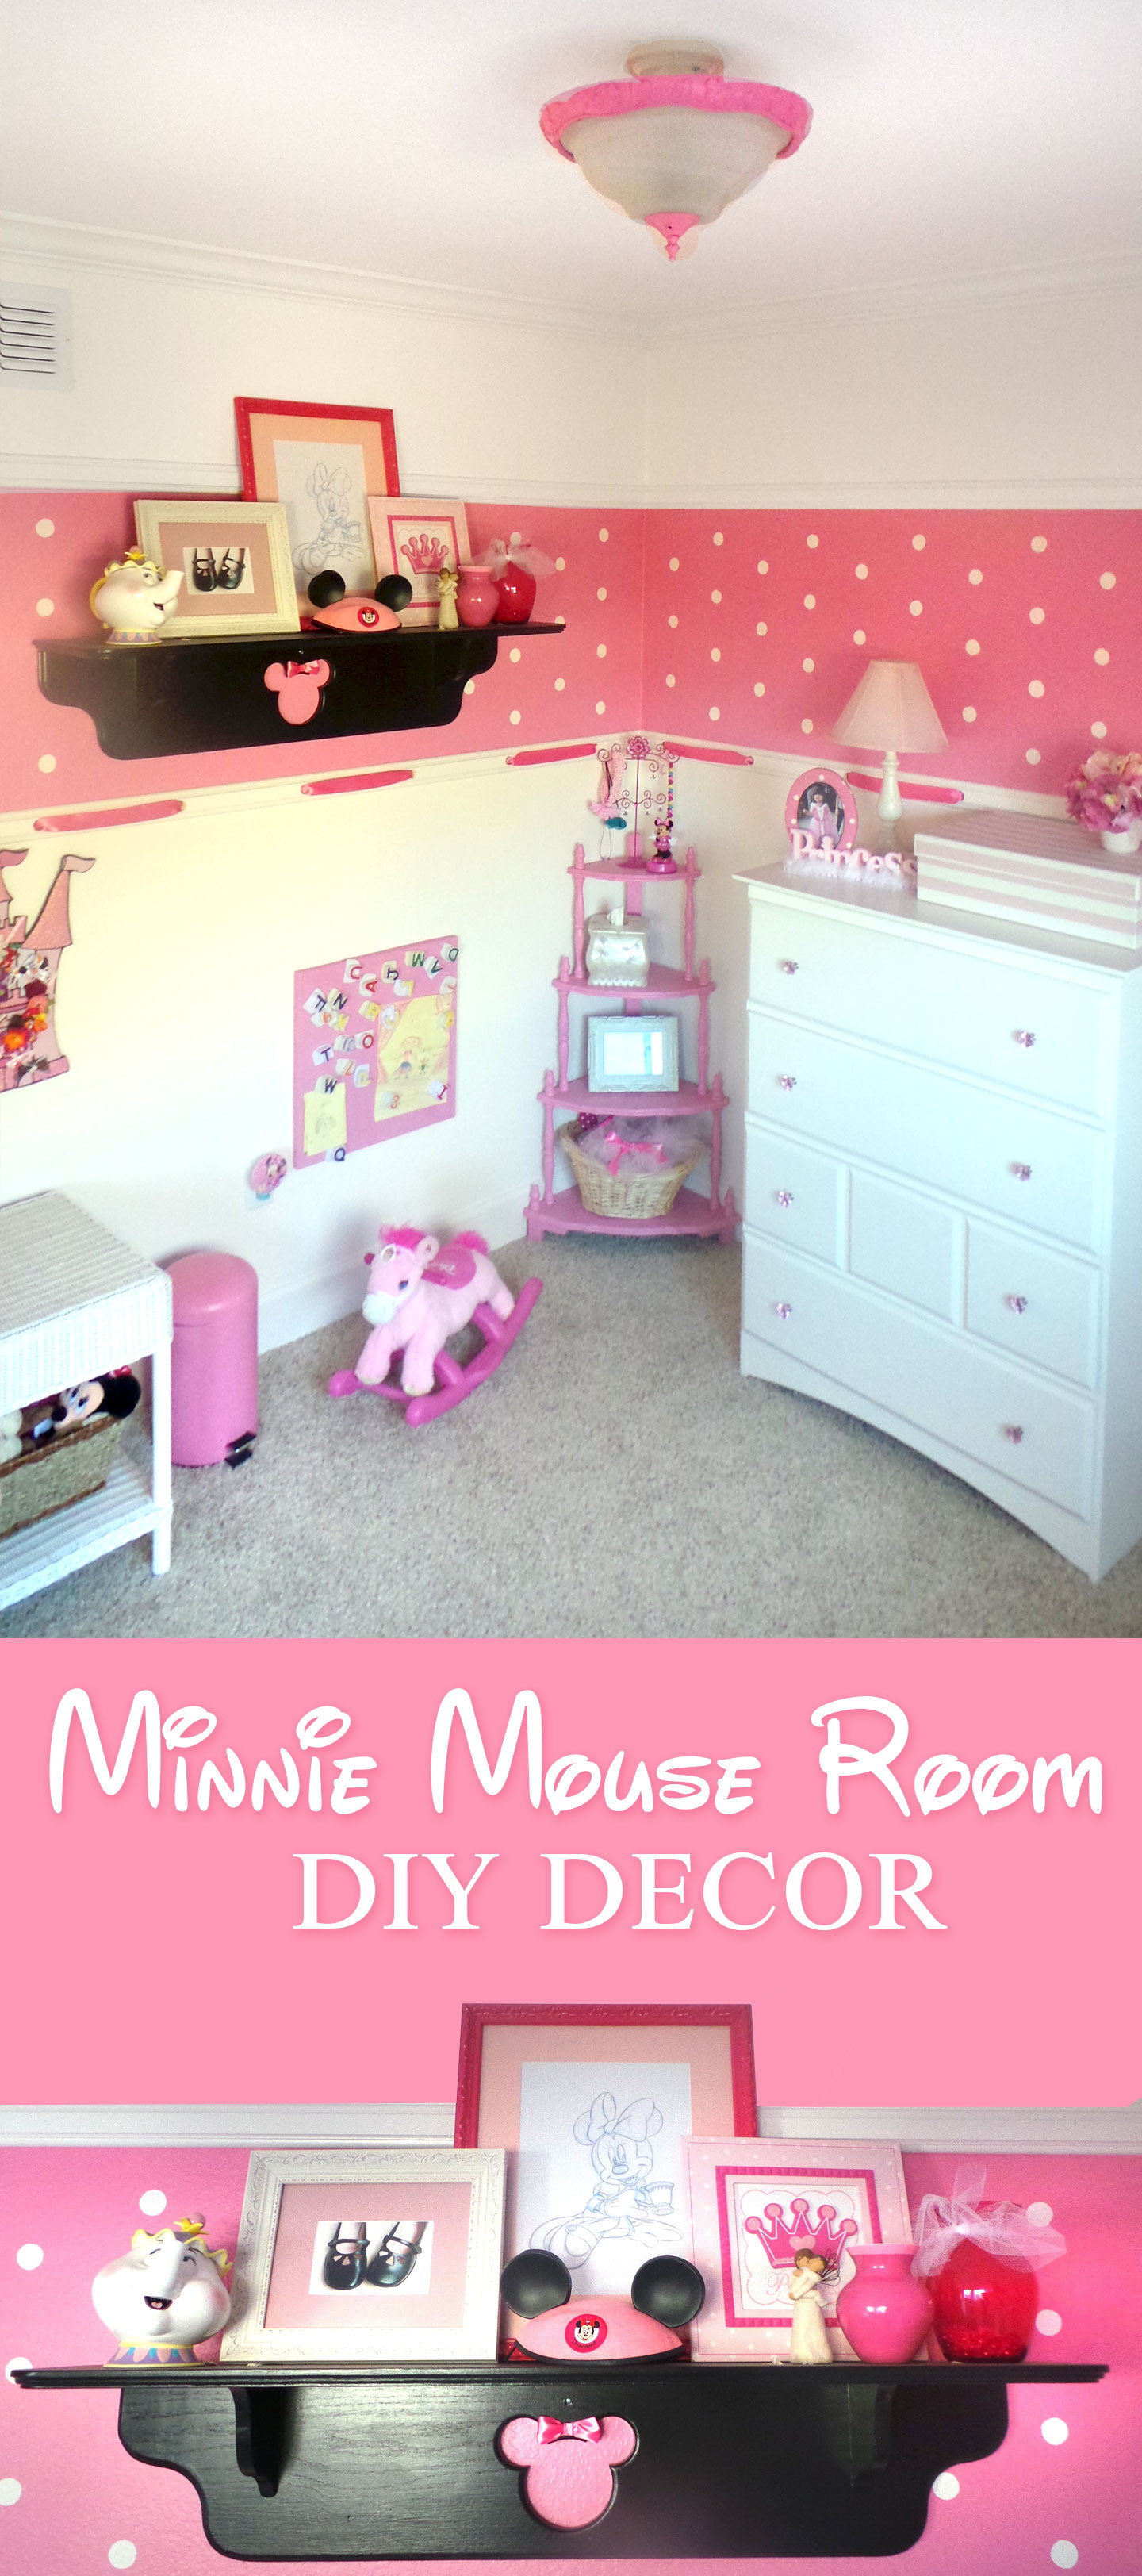 Diy Room  Minnie Mouse Room DIY Decor Highlights Along the Way